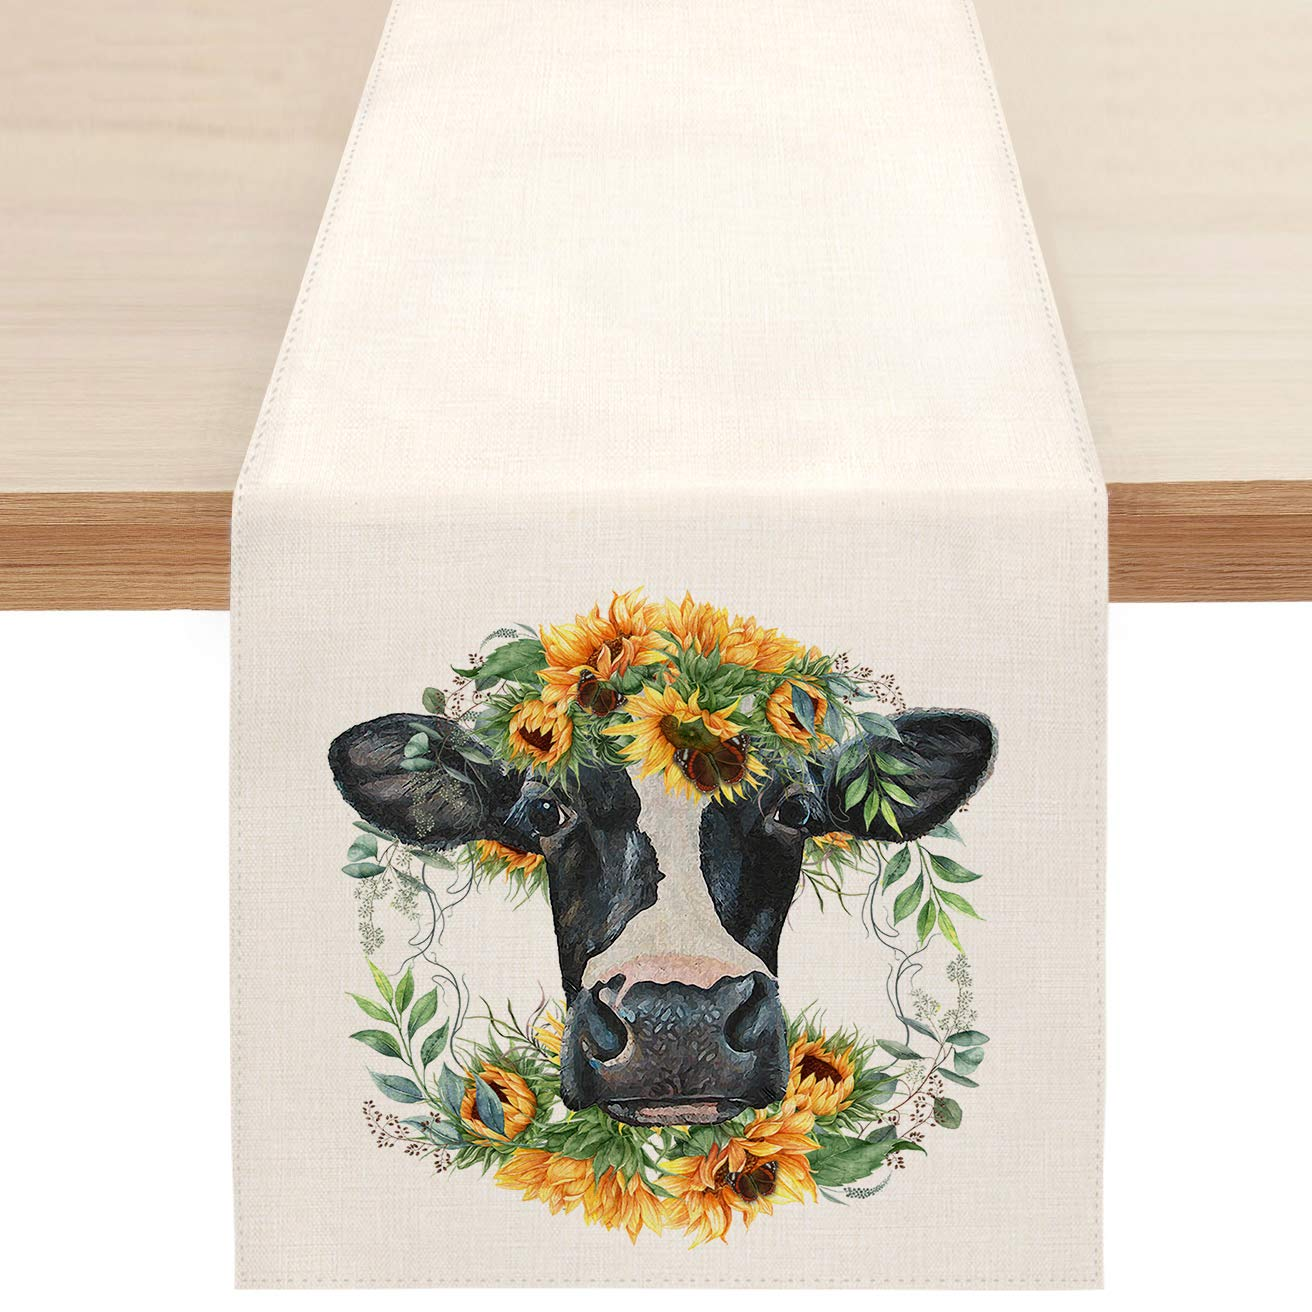 Sunflower Cow Farmhouse Table Runner, Spring Summer Floral Table Runners for Kitchen Dining Coffee or Indoor and Outdoor Home Parties Decor 13 x 72 Inches